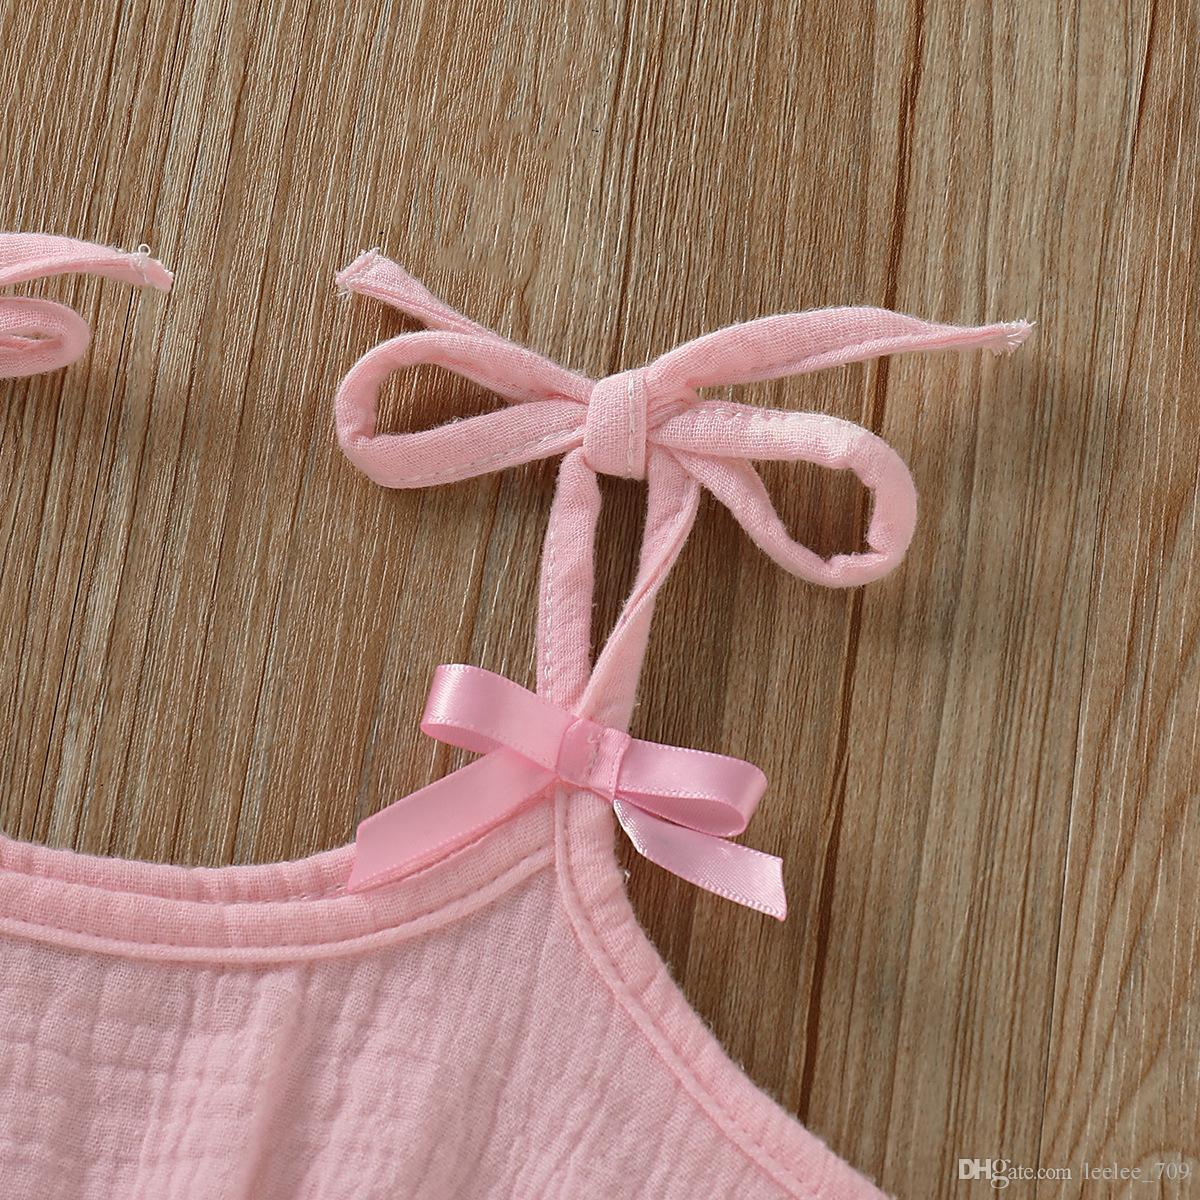 Ins Stylish Infant Baby Girls Overalls Rompers Summer Design Blank Ruffles Clothes Jumpsuits Toddler Outfits Cotton Bodysuits Suspender 0-2t